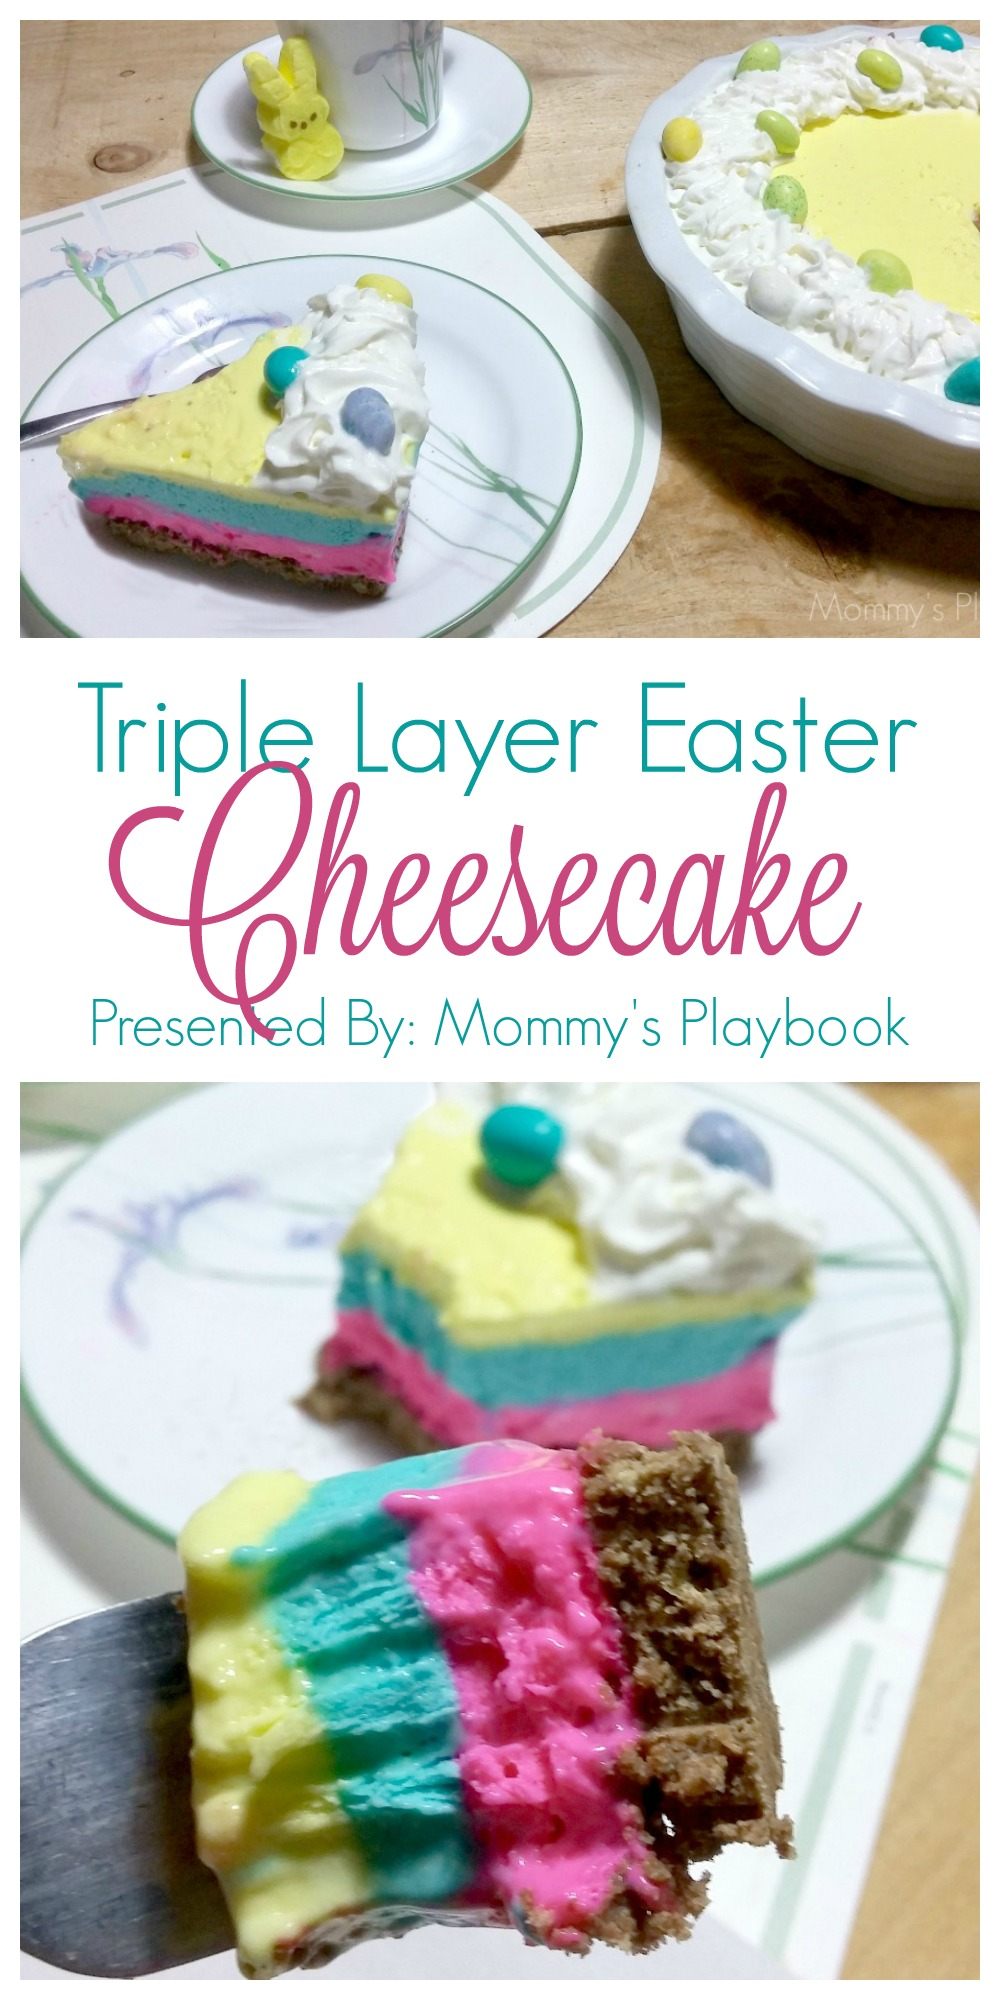 Perfecting the No-Bake Chesecake! #EasterCheesecake #Cheesecake #Easter #EasterDesserts